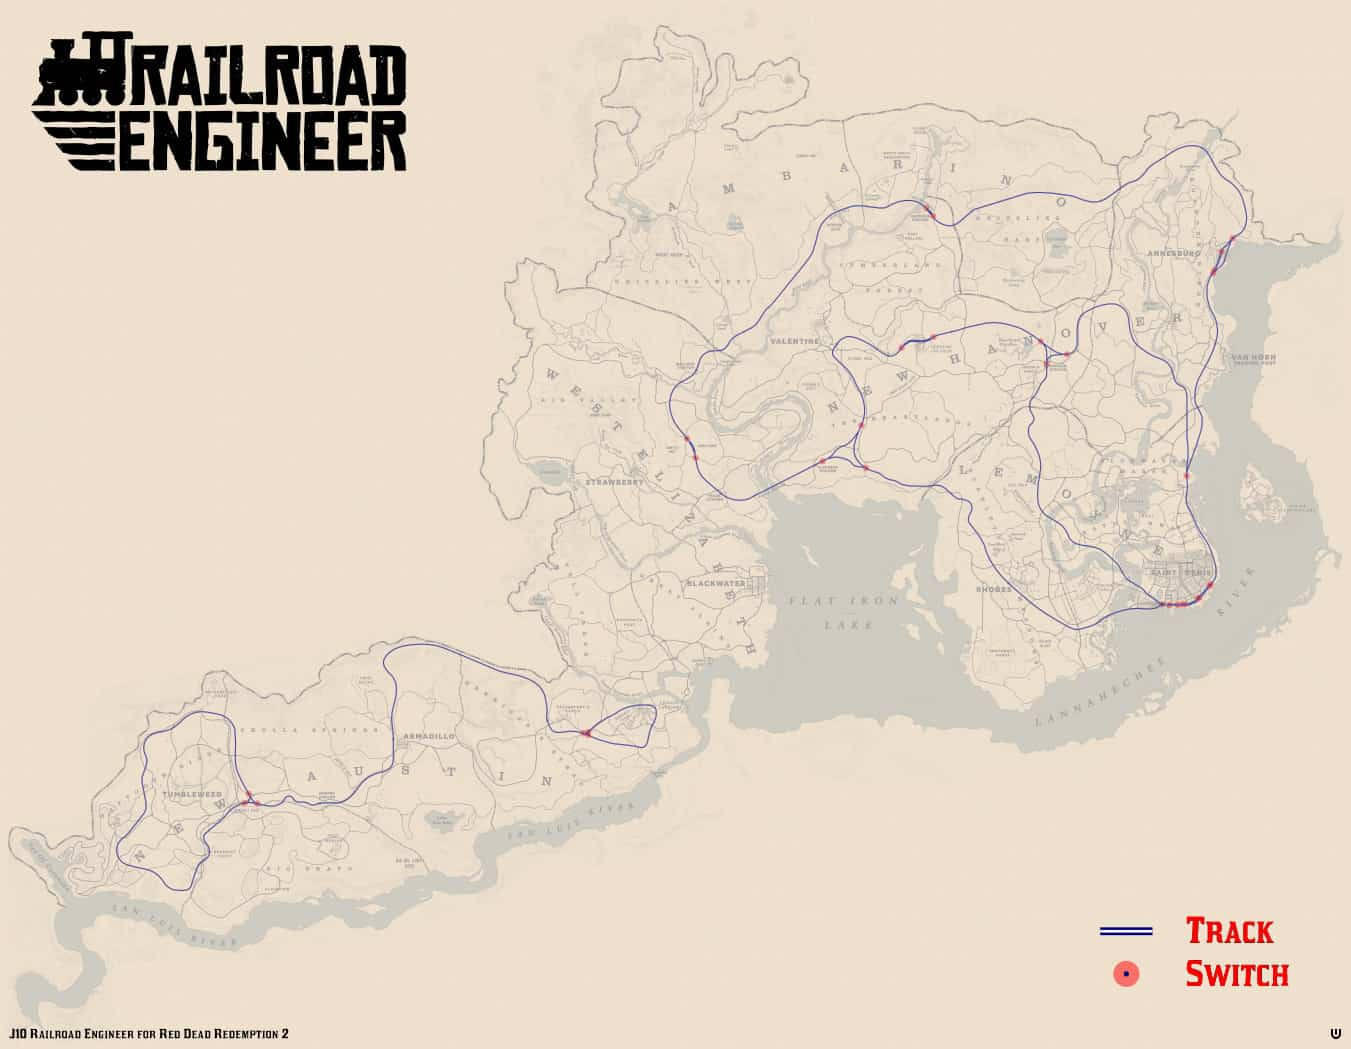 Red Dead Redemption 2 - Railroad Engineer Map